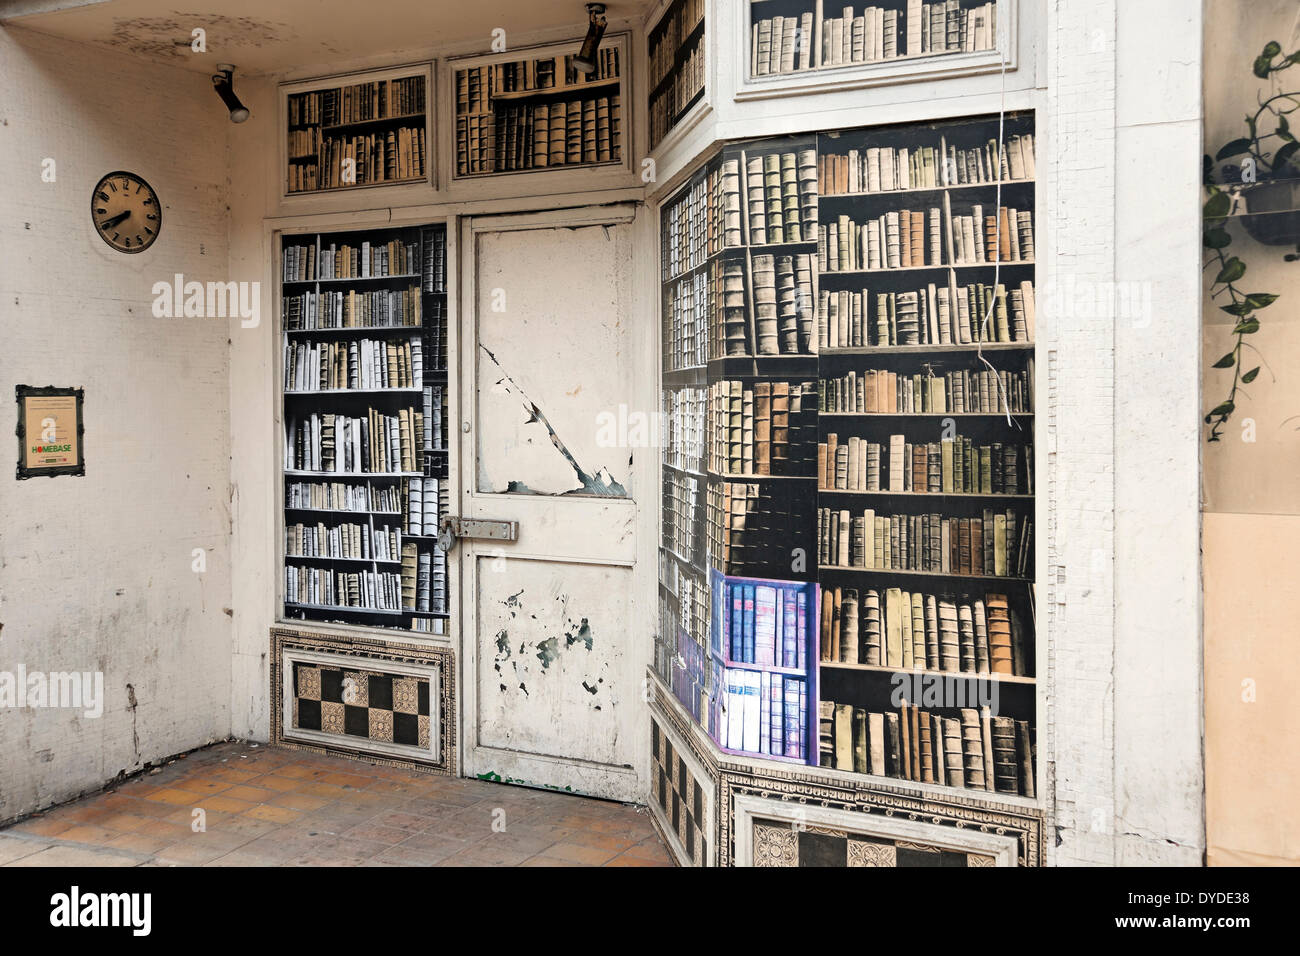 A empty shop with covered windows in the style of book shelves. - Stock Image